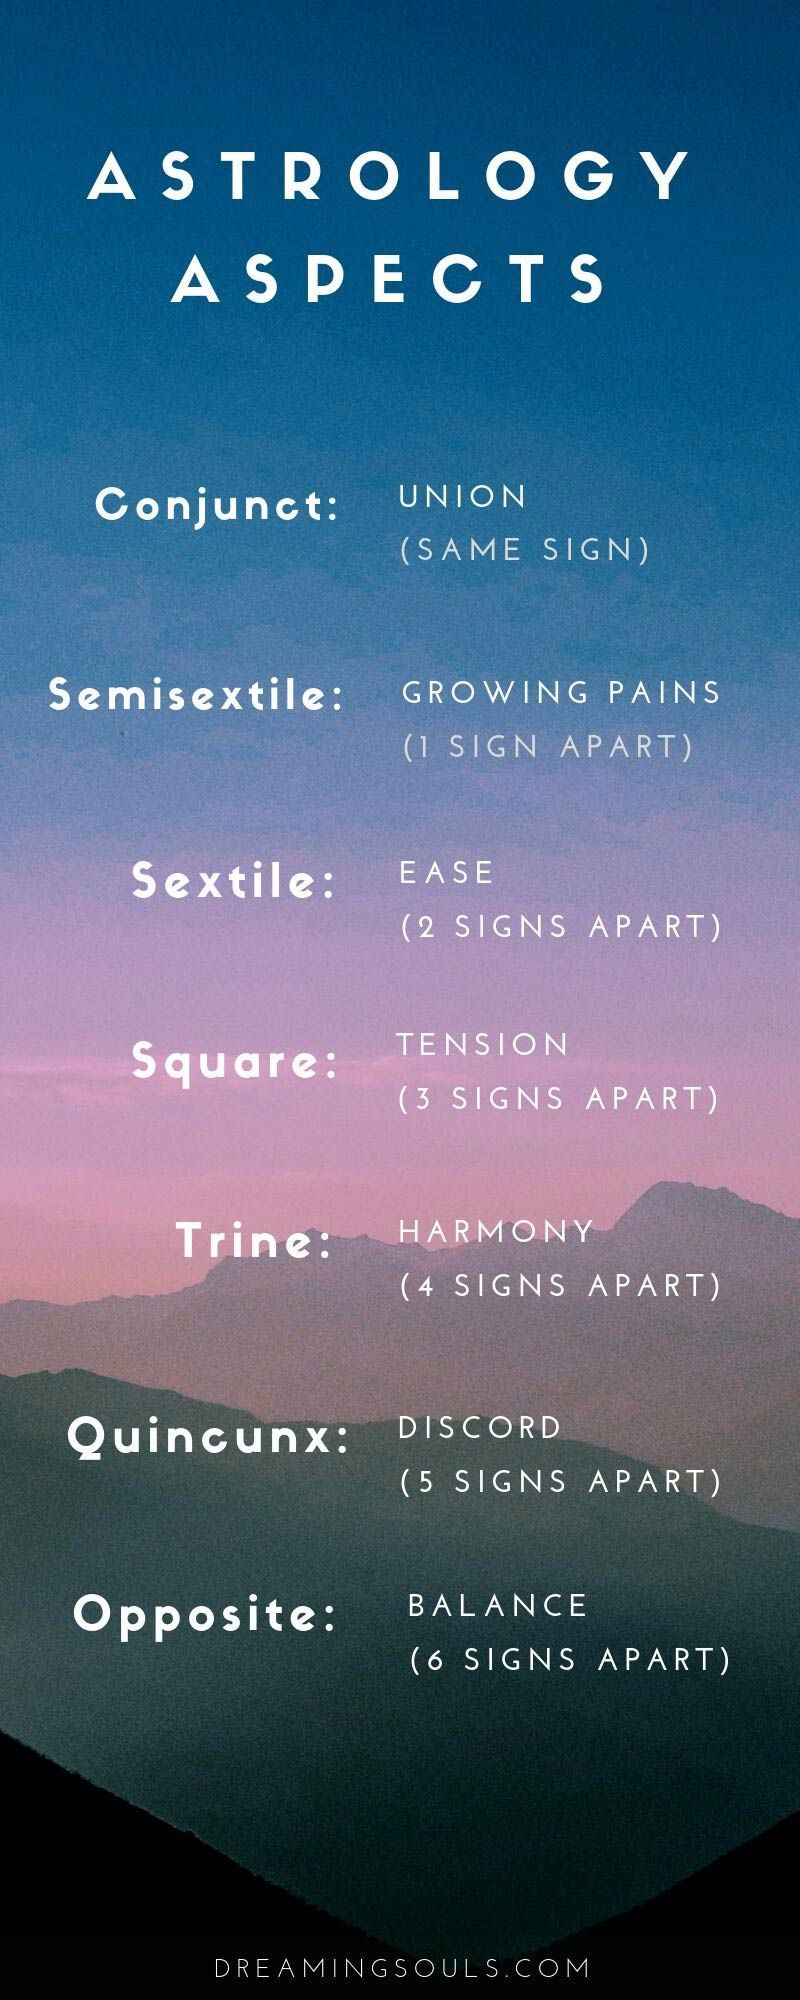 Read this post to learn the meaning of aspects in astrology! Understand how to interpret a conjunction, semi-sextile, sextile, square, trine, inconjunct/quincunx, and oppositions in your birth chart. If you've ever looked at an astrology chart, you've not #astrologyaesthetic